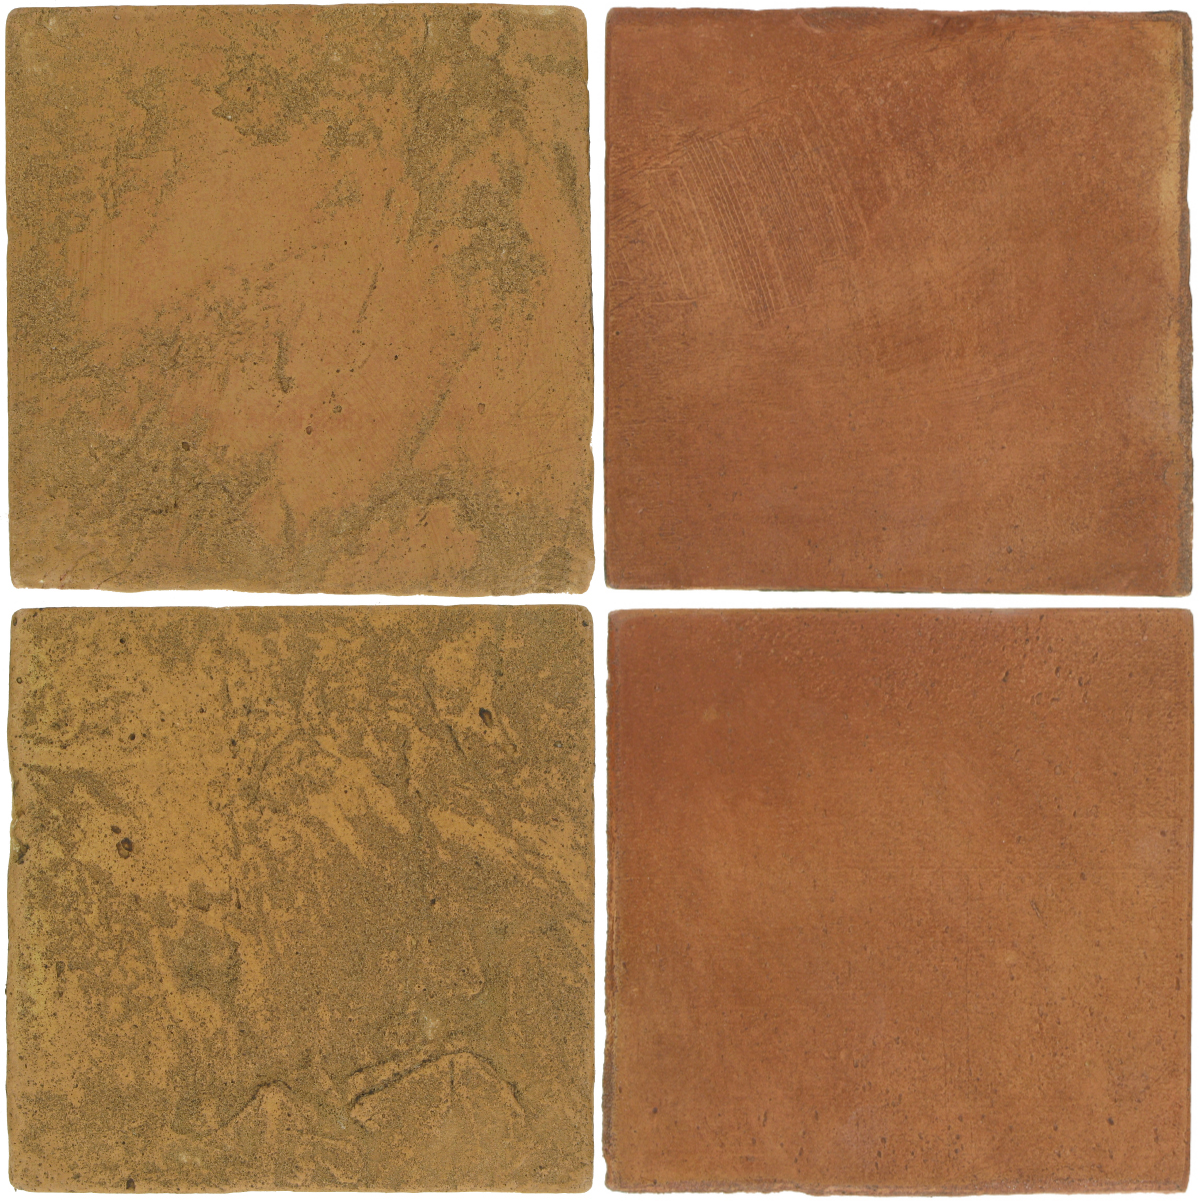 Pedralbes Antique Terracotta  2 Color Combinations  VTG-PSSW Siena Wheat + OHS-PSTR Traditional